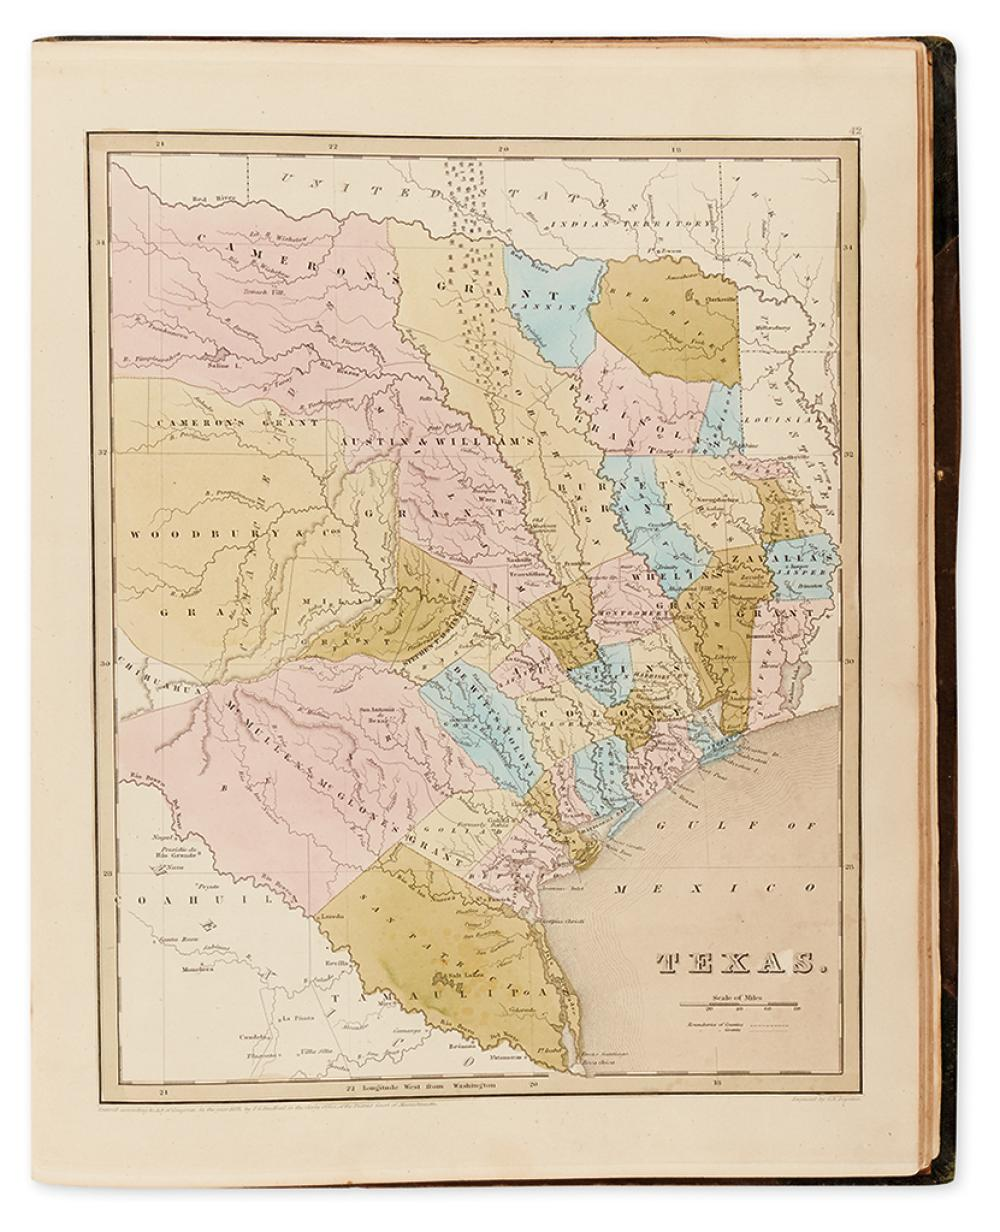 GOODRICH, SAMUEL GRISWOLD; [and BRADFORD, THOMAS GAMALIEL.] A General Atlas of the World,